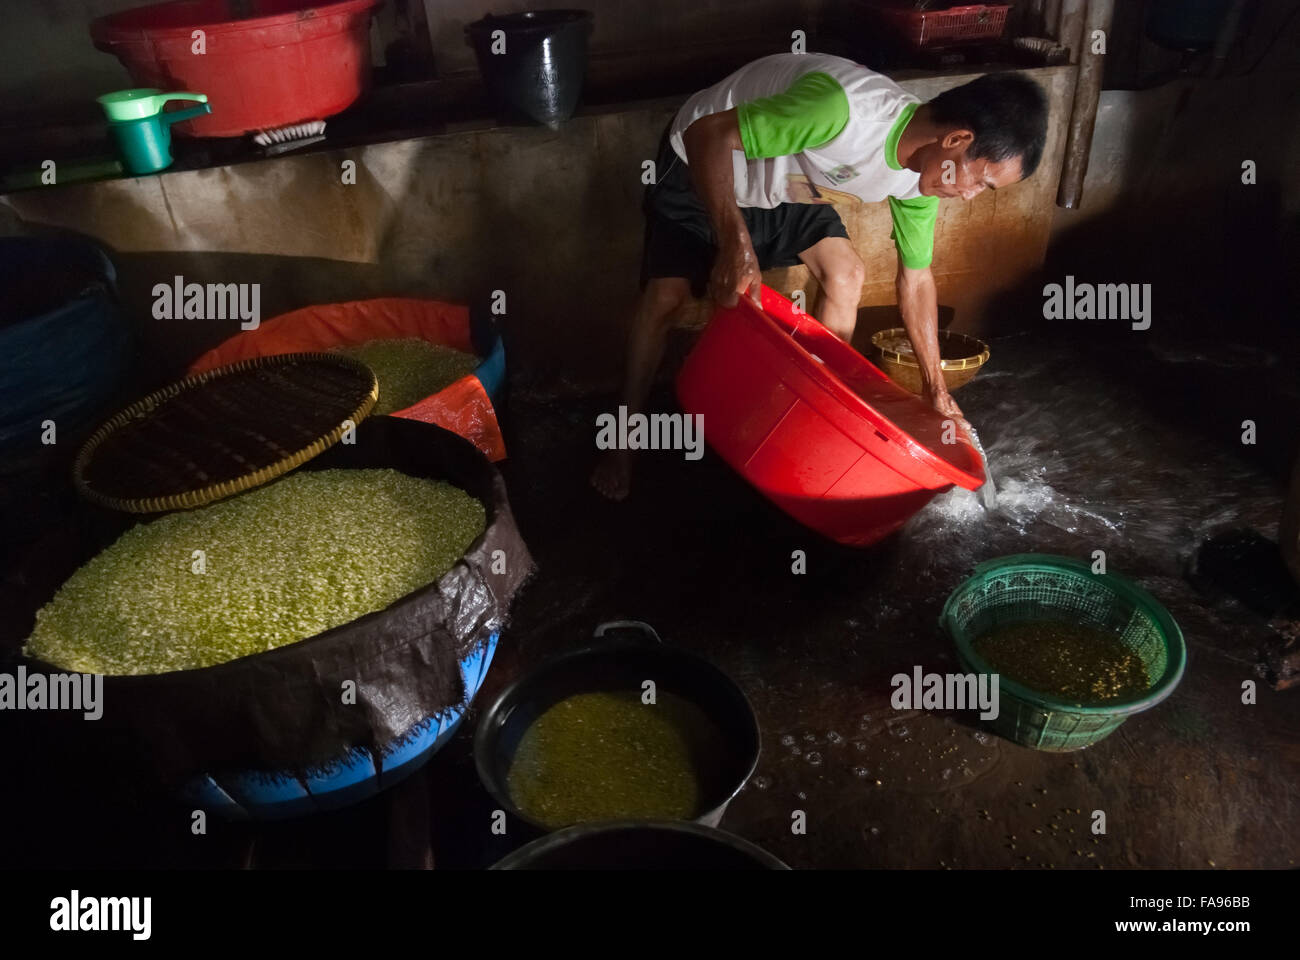 A man pouring waste water as he washes mung beans in a home food processing industry. - Stock Image